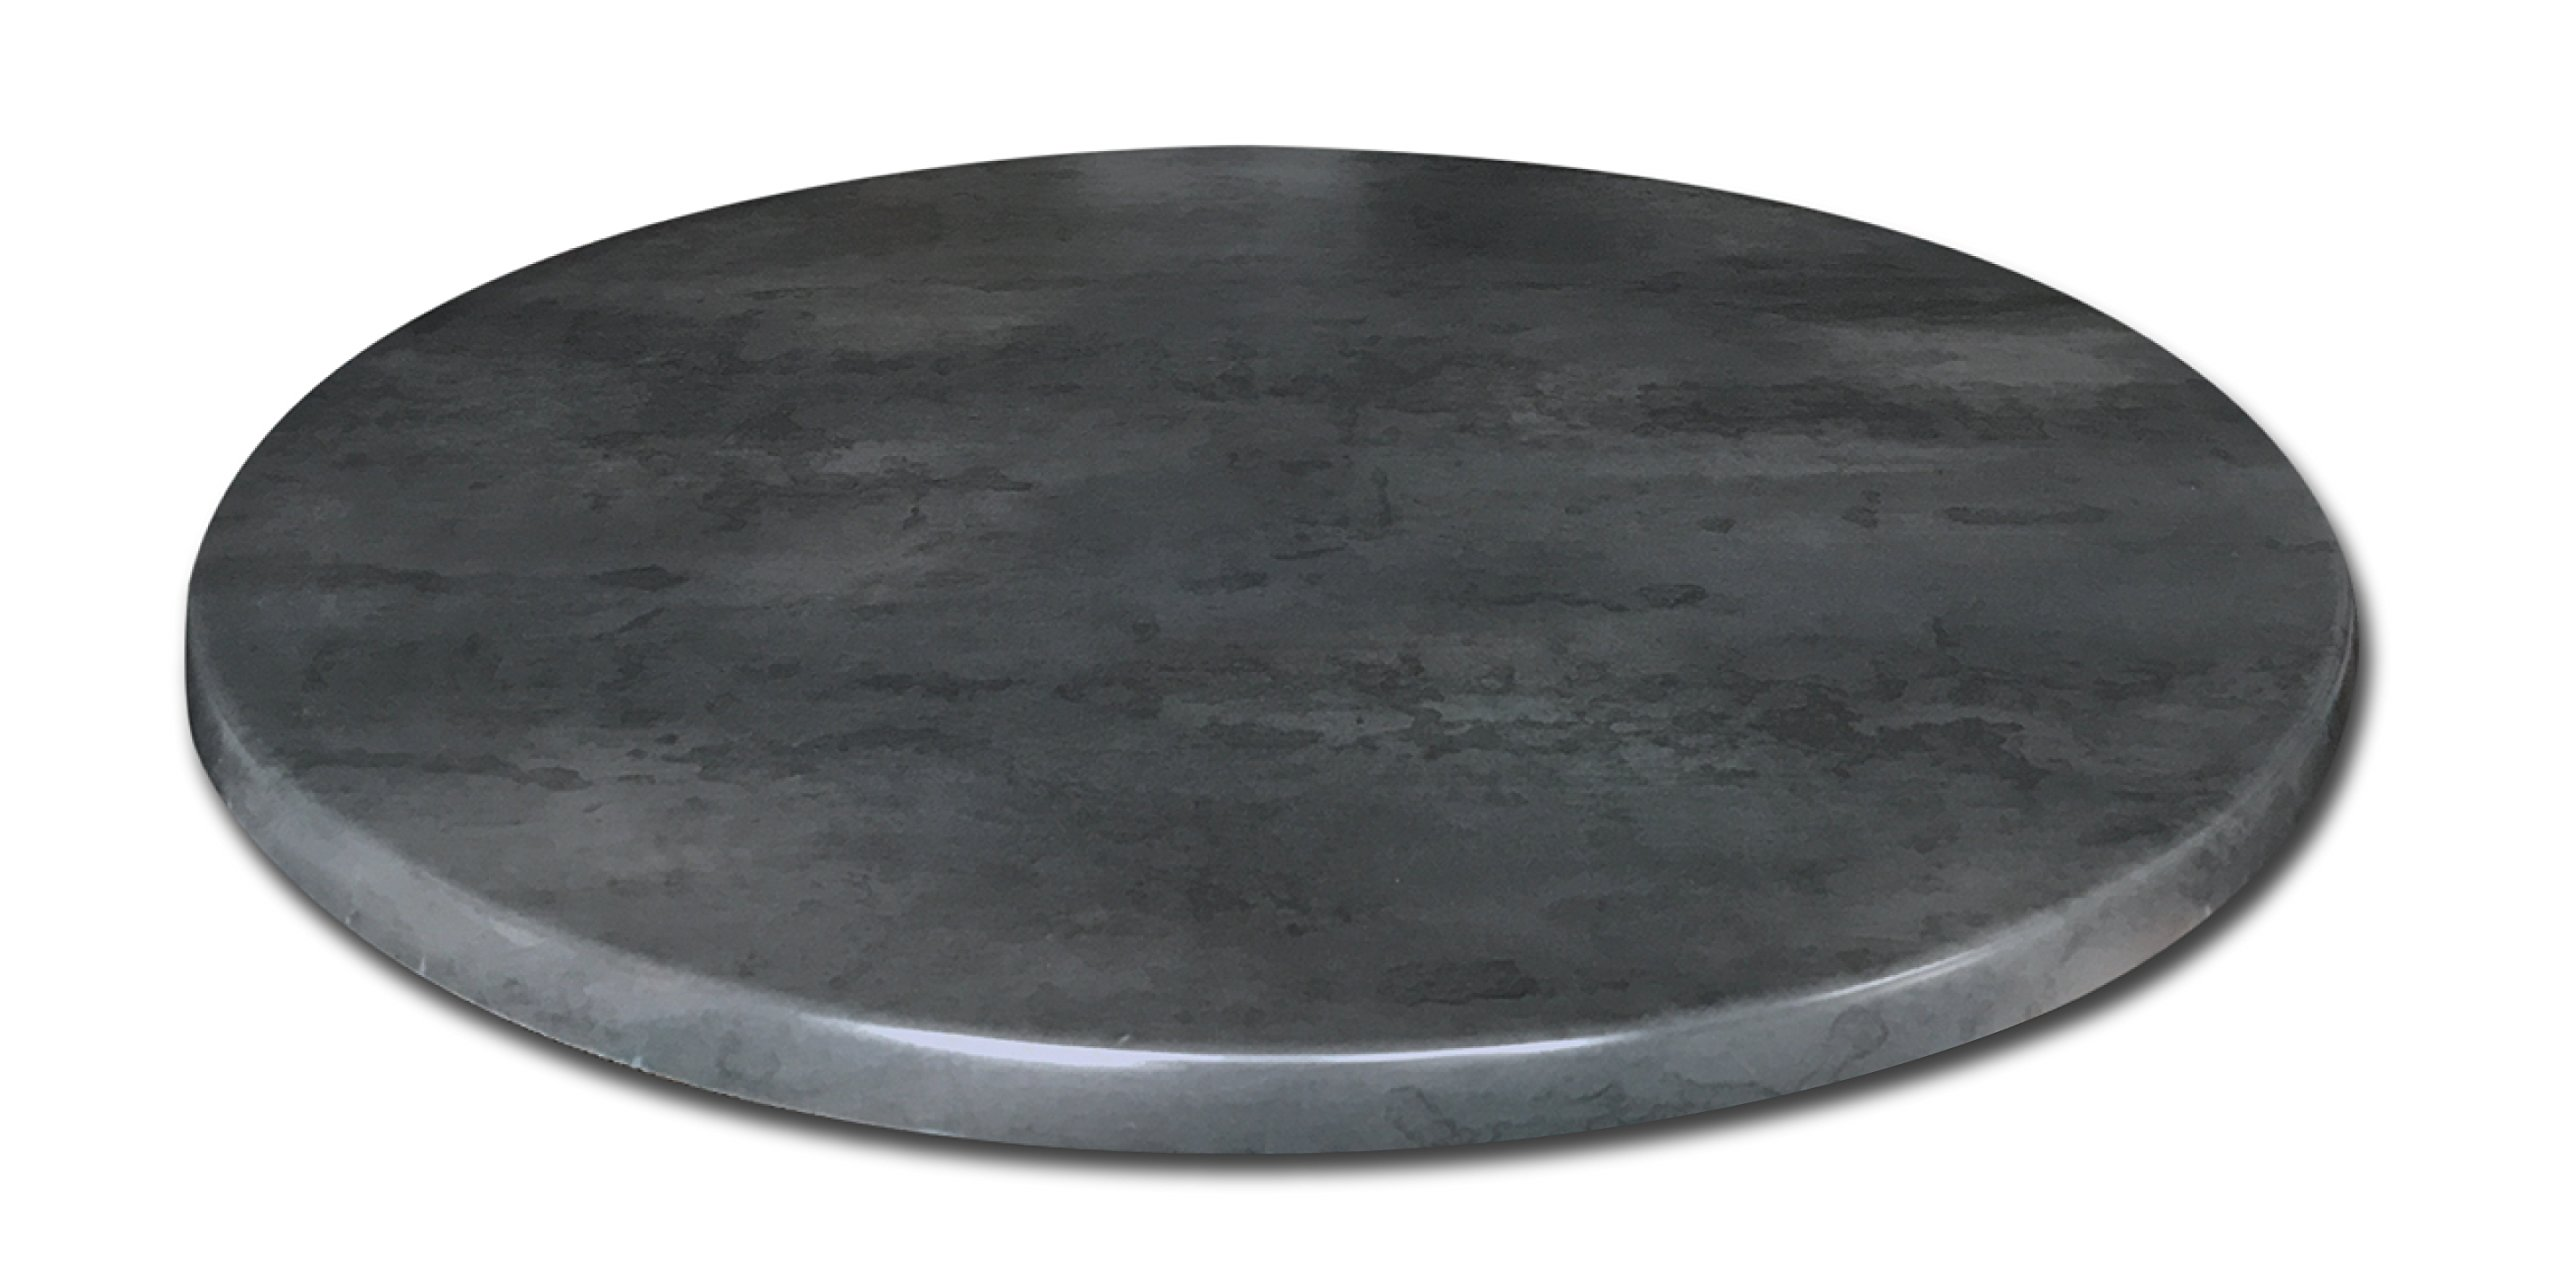 Holland Bar Stool Co. OD36RBlkStl Indoor/Outdoor Table Top, Black Steel by Holland Bar Stool Co.